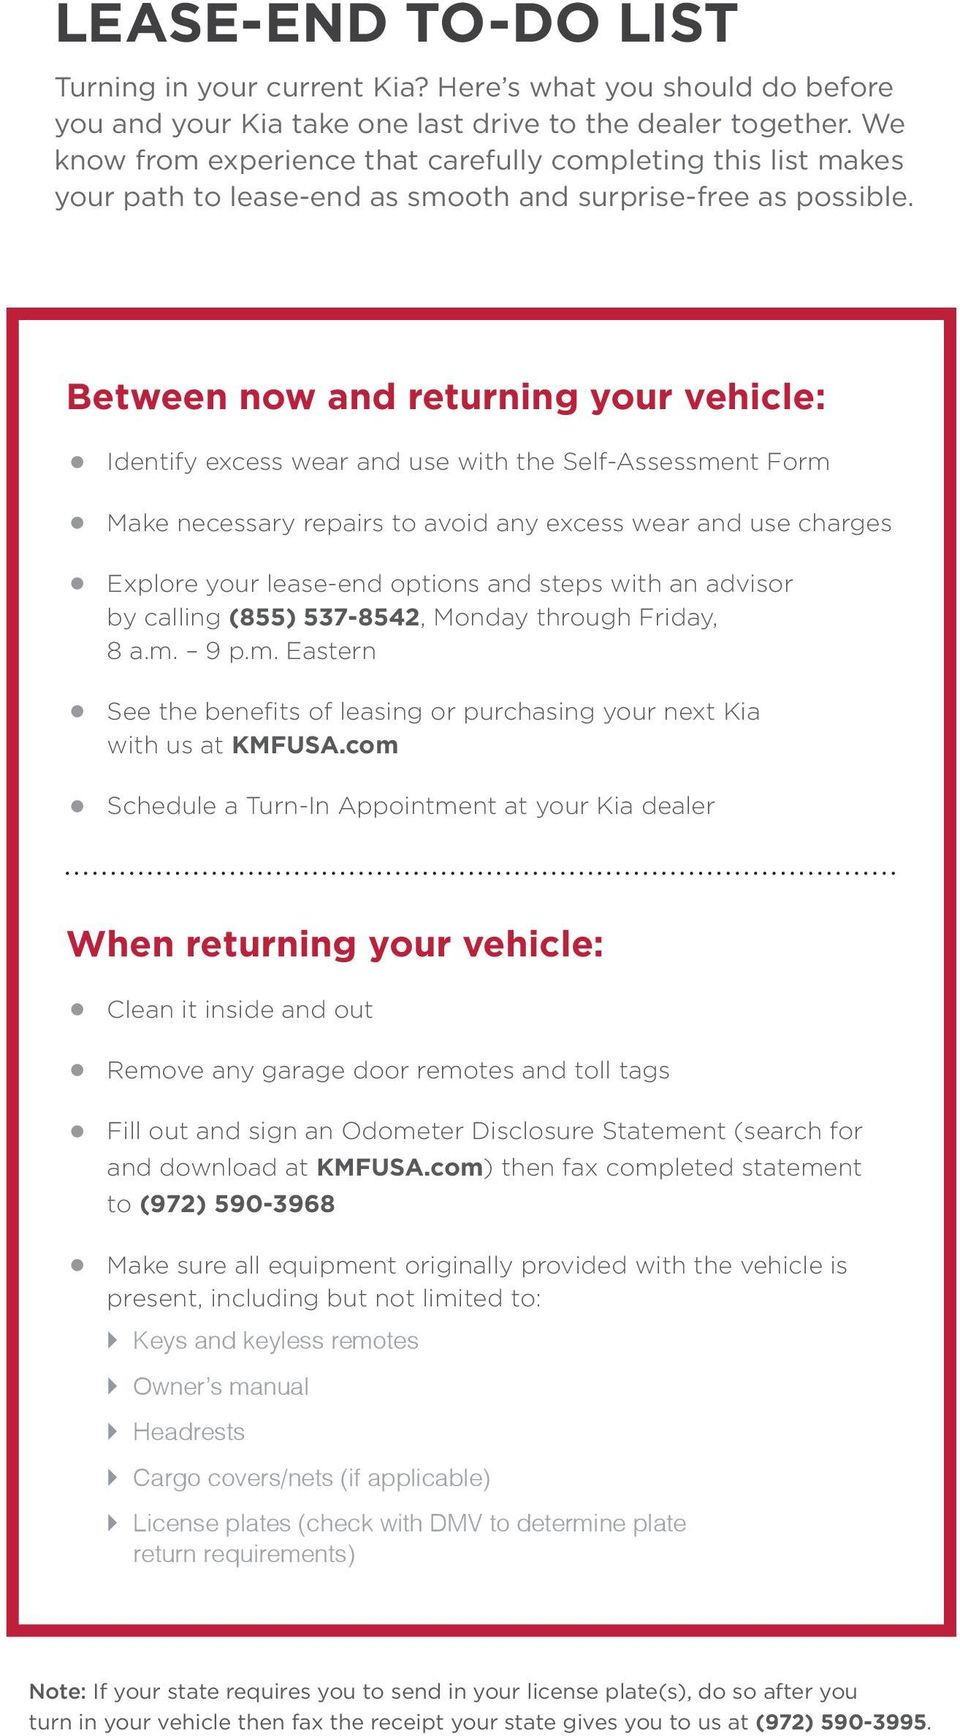 Between now and returning your vehicle: Identify excess wear and use with the Self-Assessment Form Make necessary repairs to avoid any excess wear and use charges Explore your lease-end options and